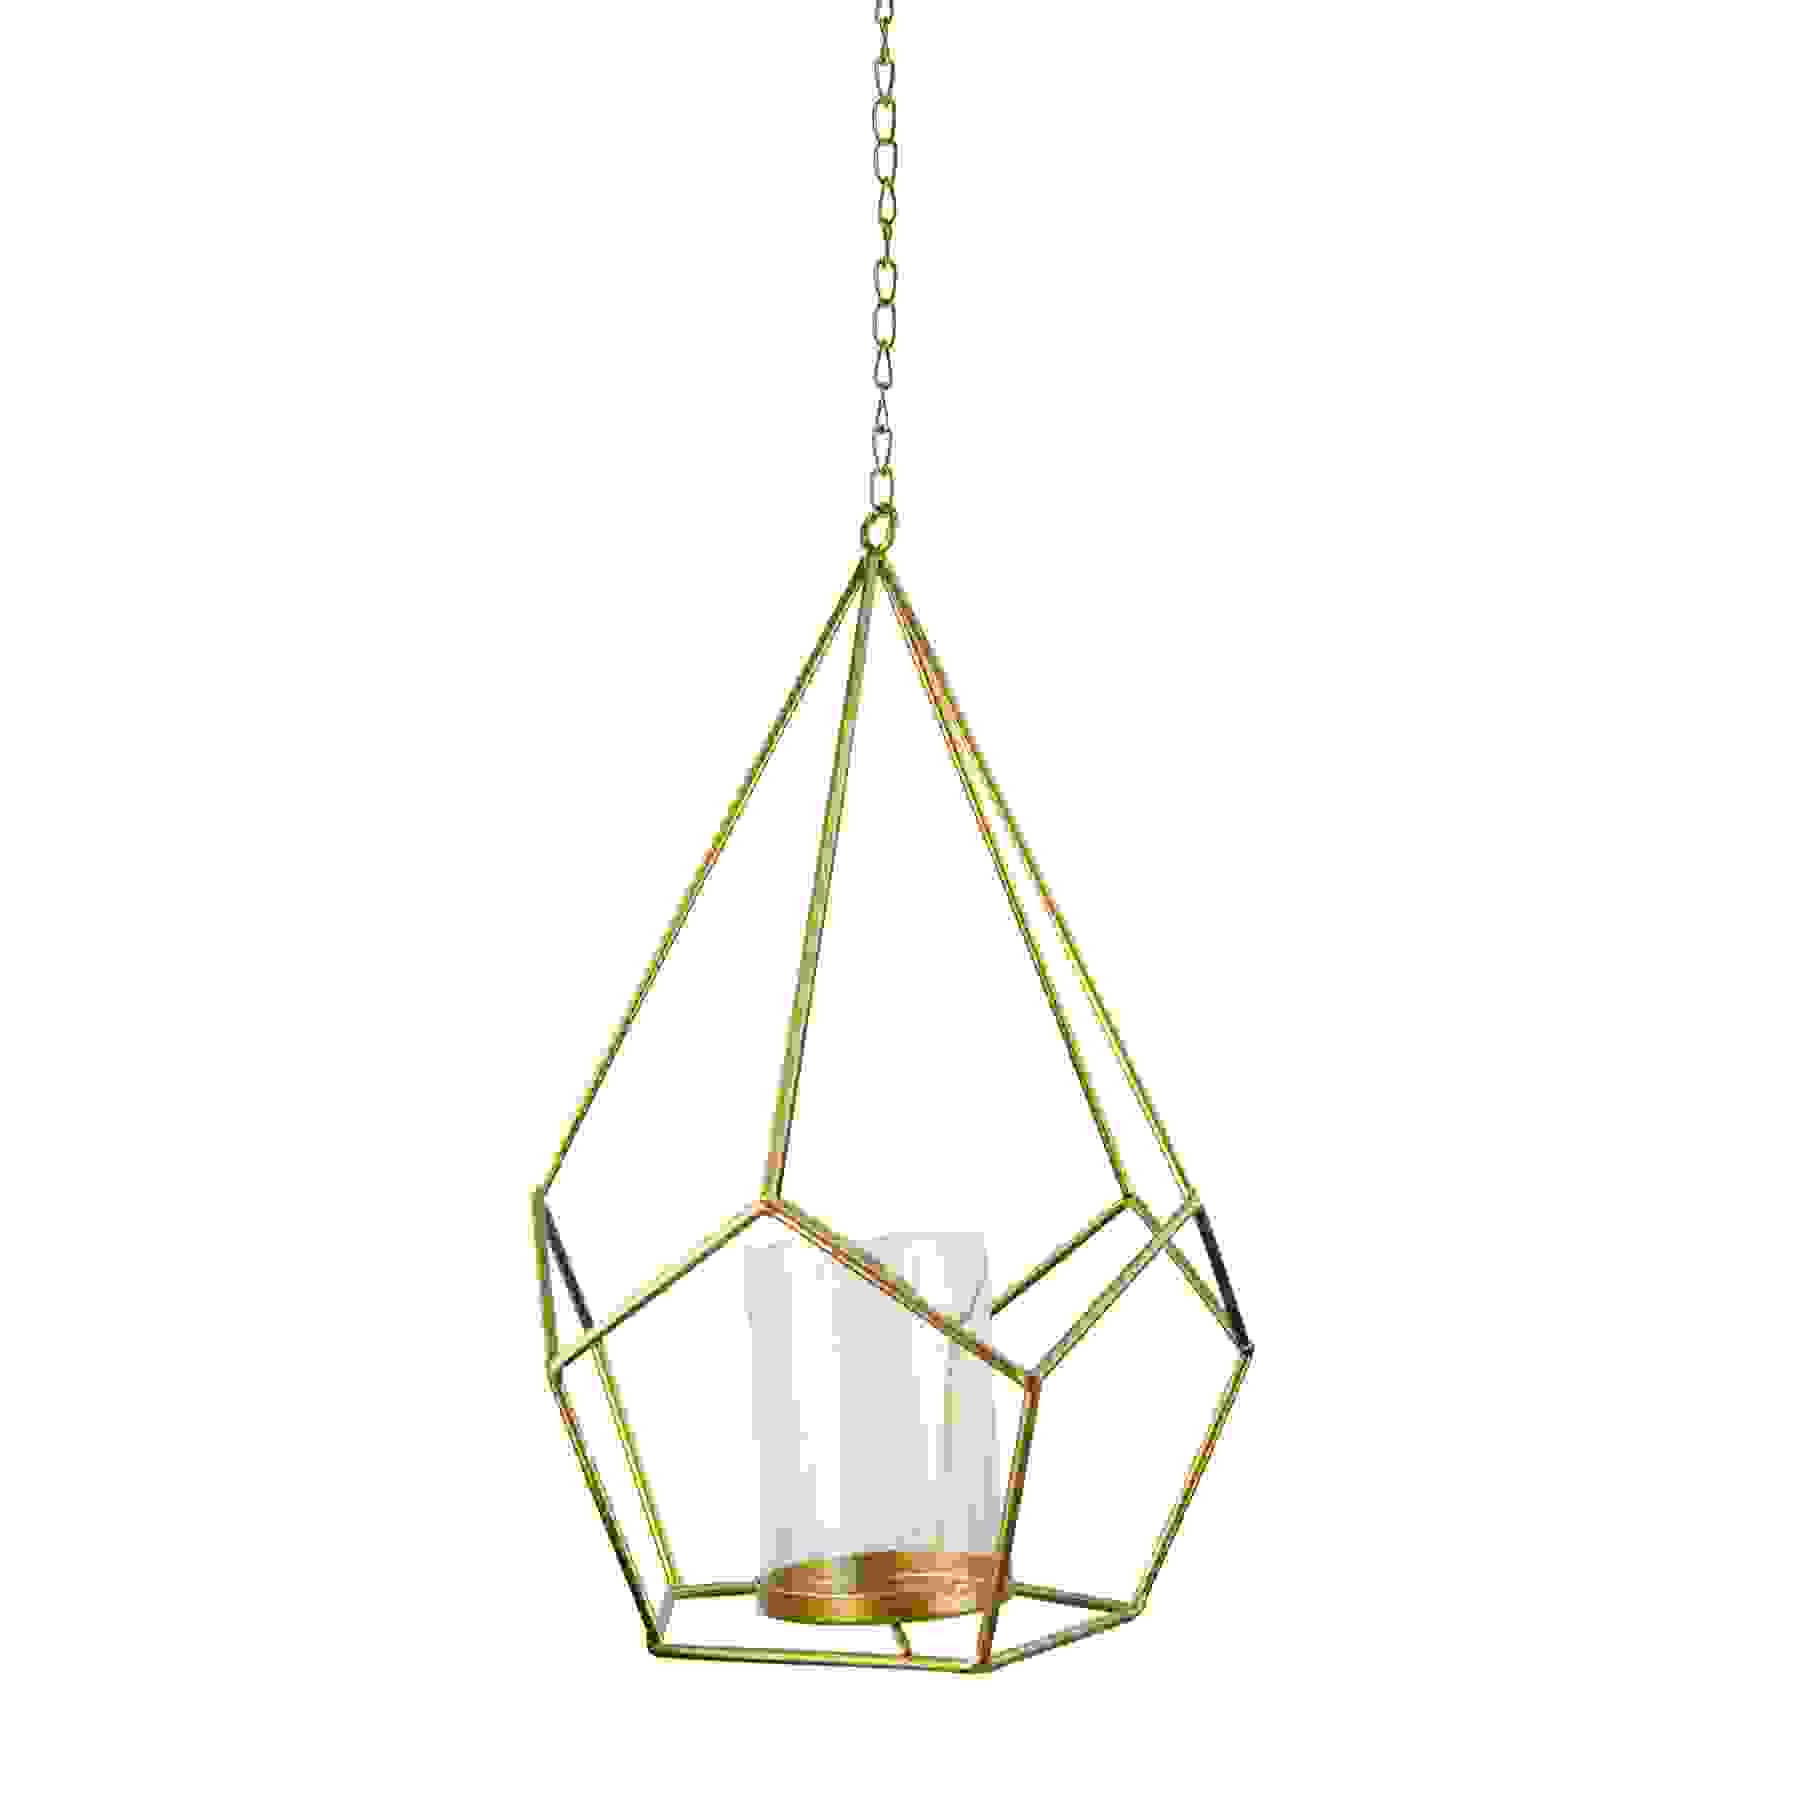 WIRE DIAMOND LANTERN w/GLASS G